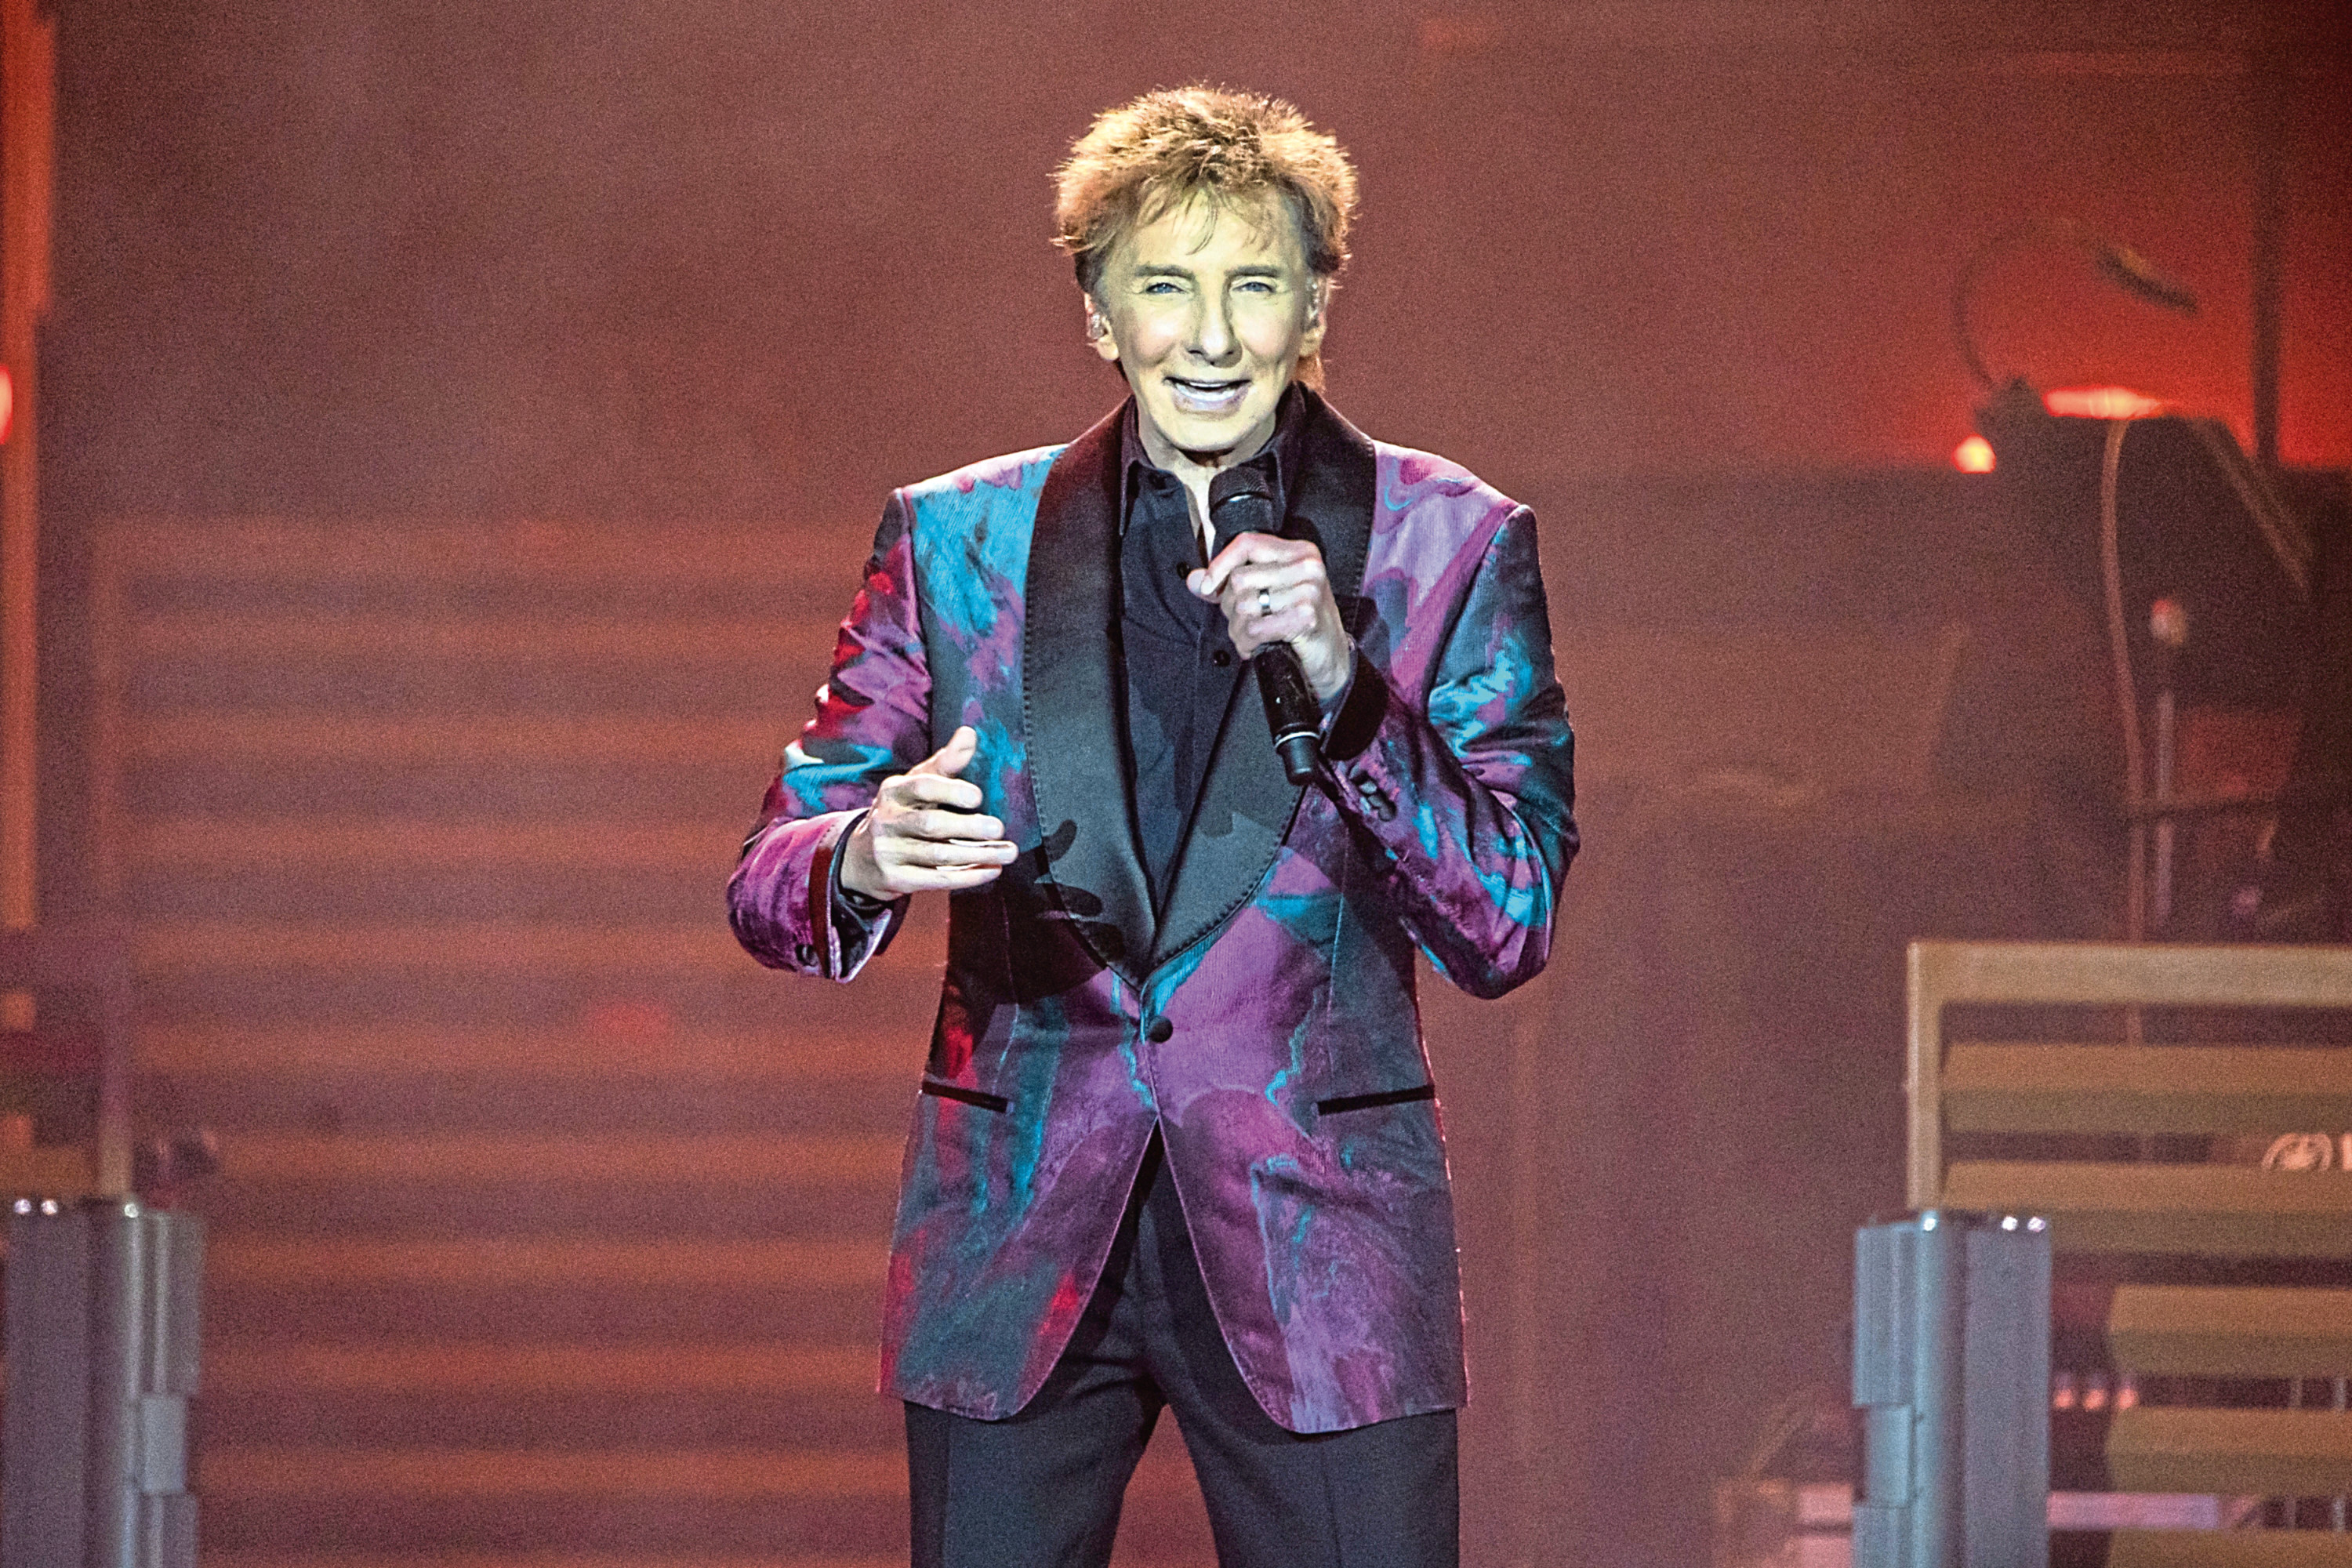 Barry Manilow performing earlier this year (Lorne Thomson/Redferns)